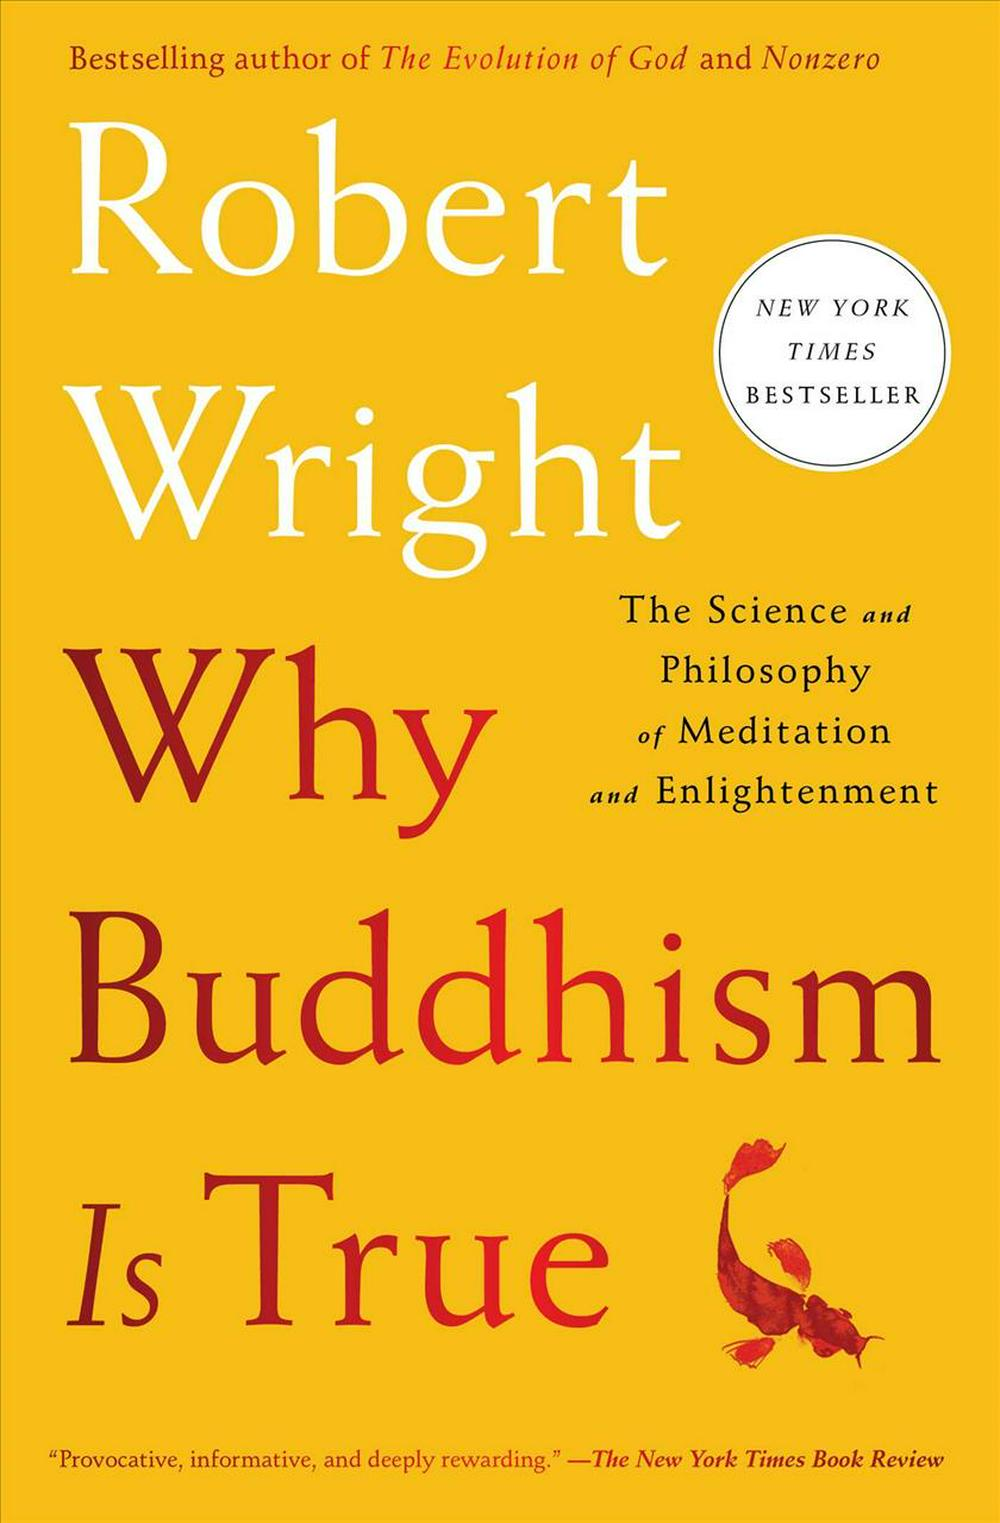 Why Buddhism Is True: The Science and Philosophy of Meditation and Enlightenment by Robert Wright, ISBN: 9781439195468